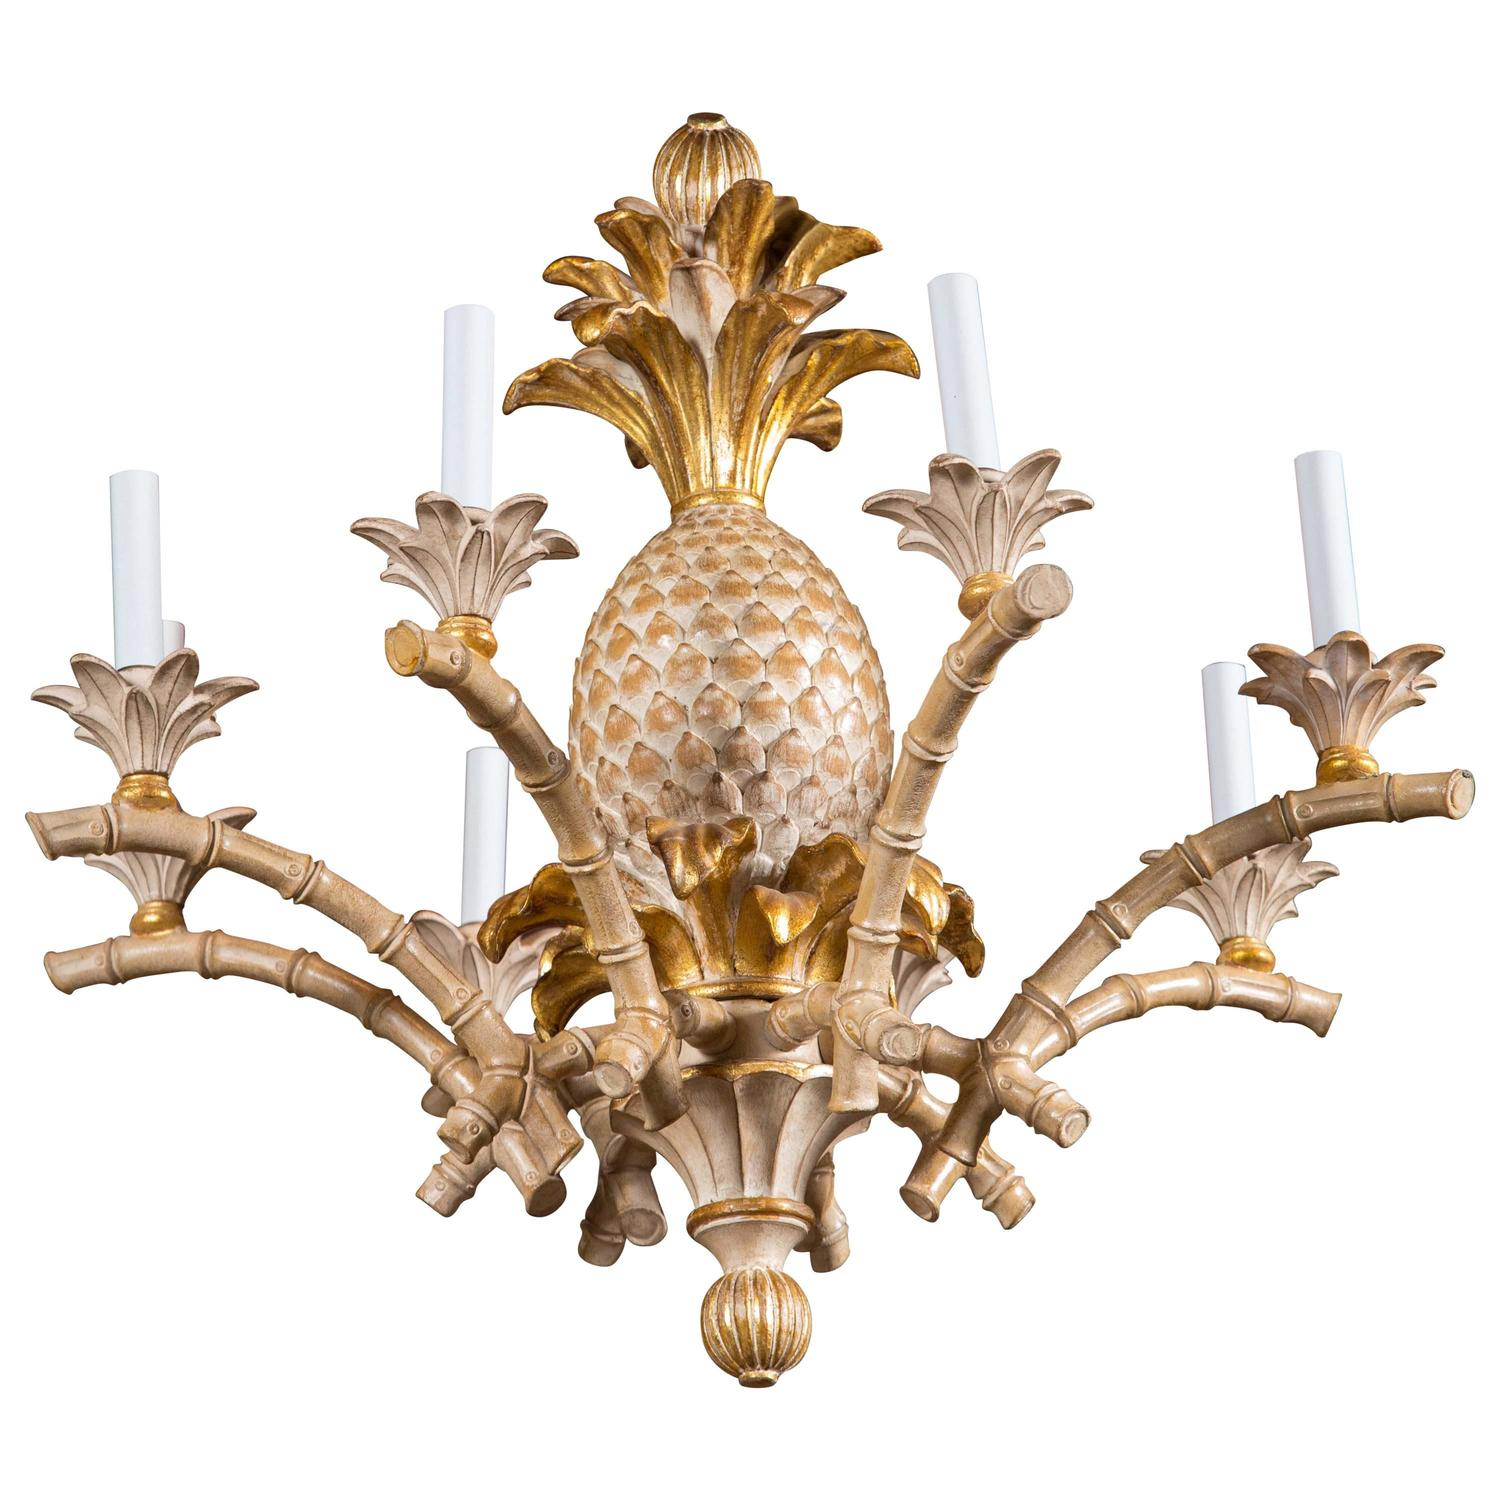 Italian Carved Wood Pineapple Chandelier For Sale at 1stdibs